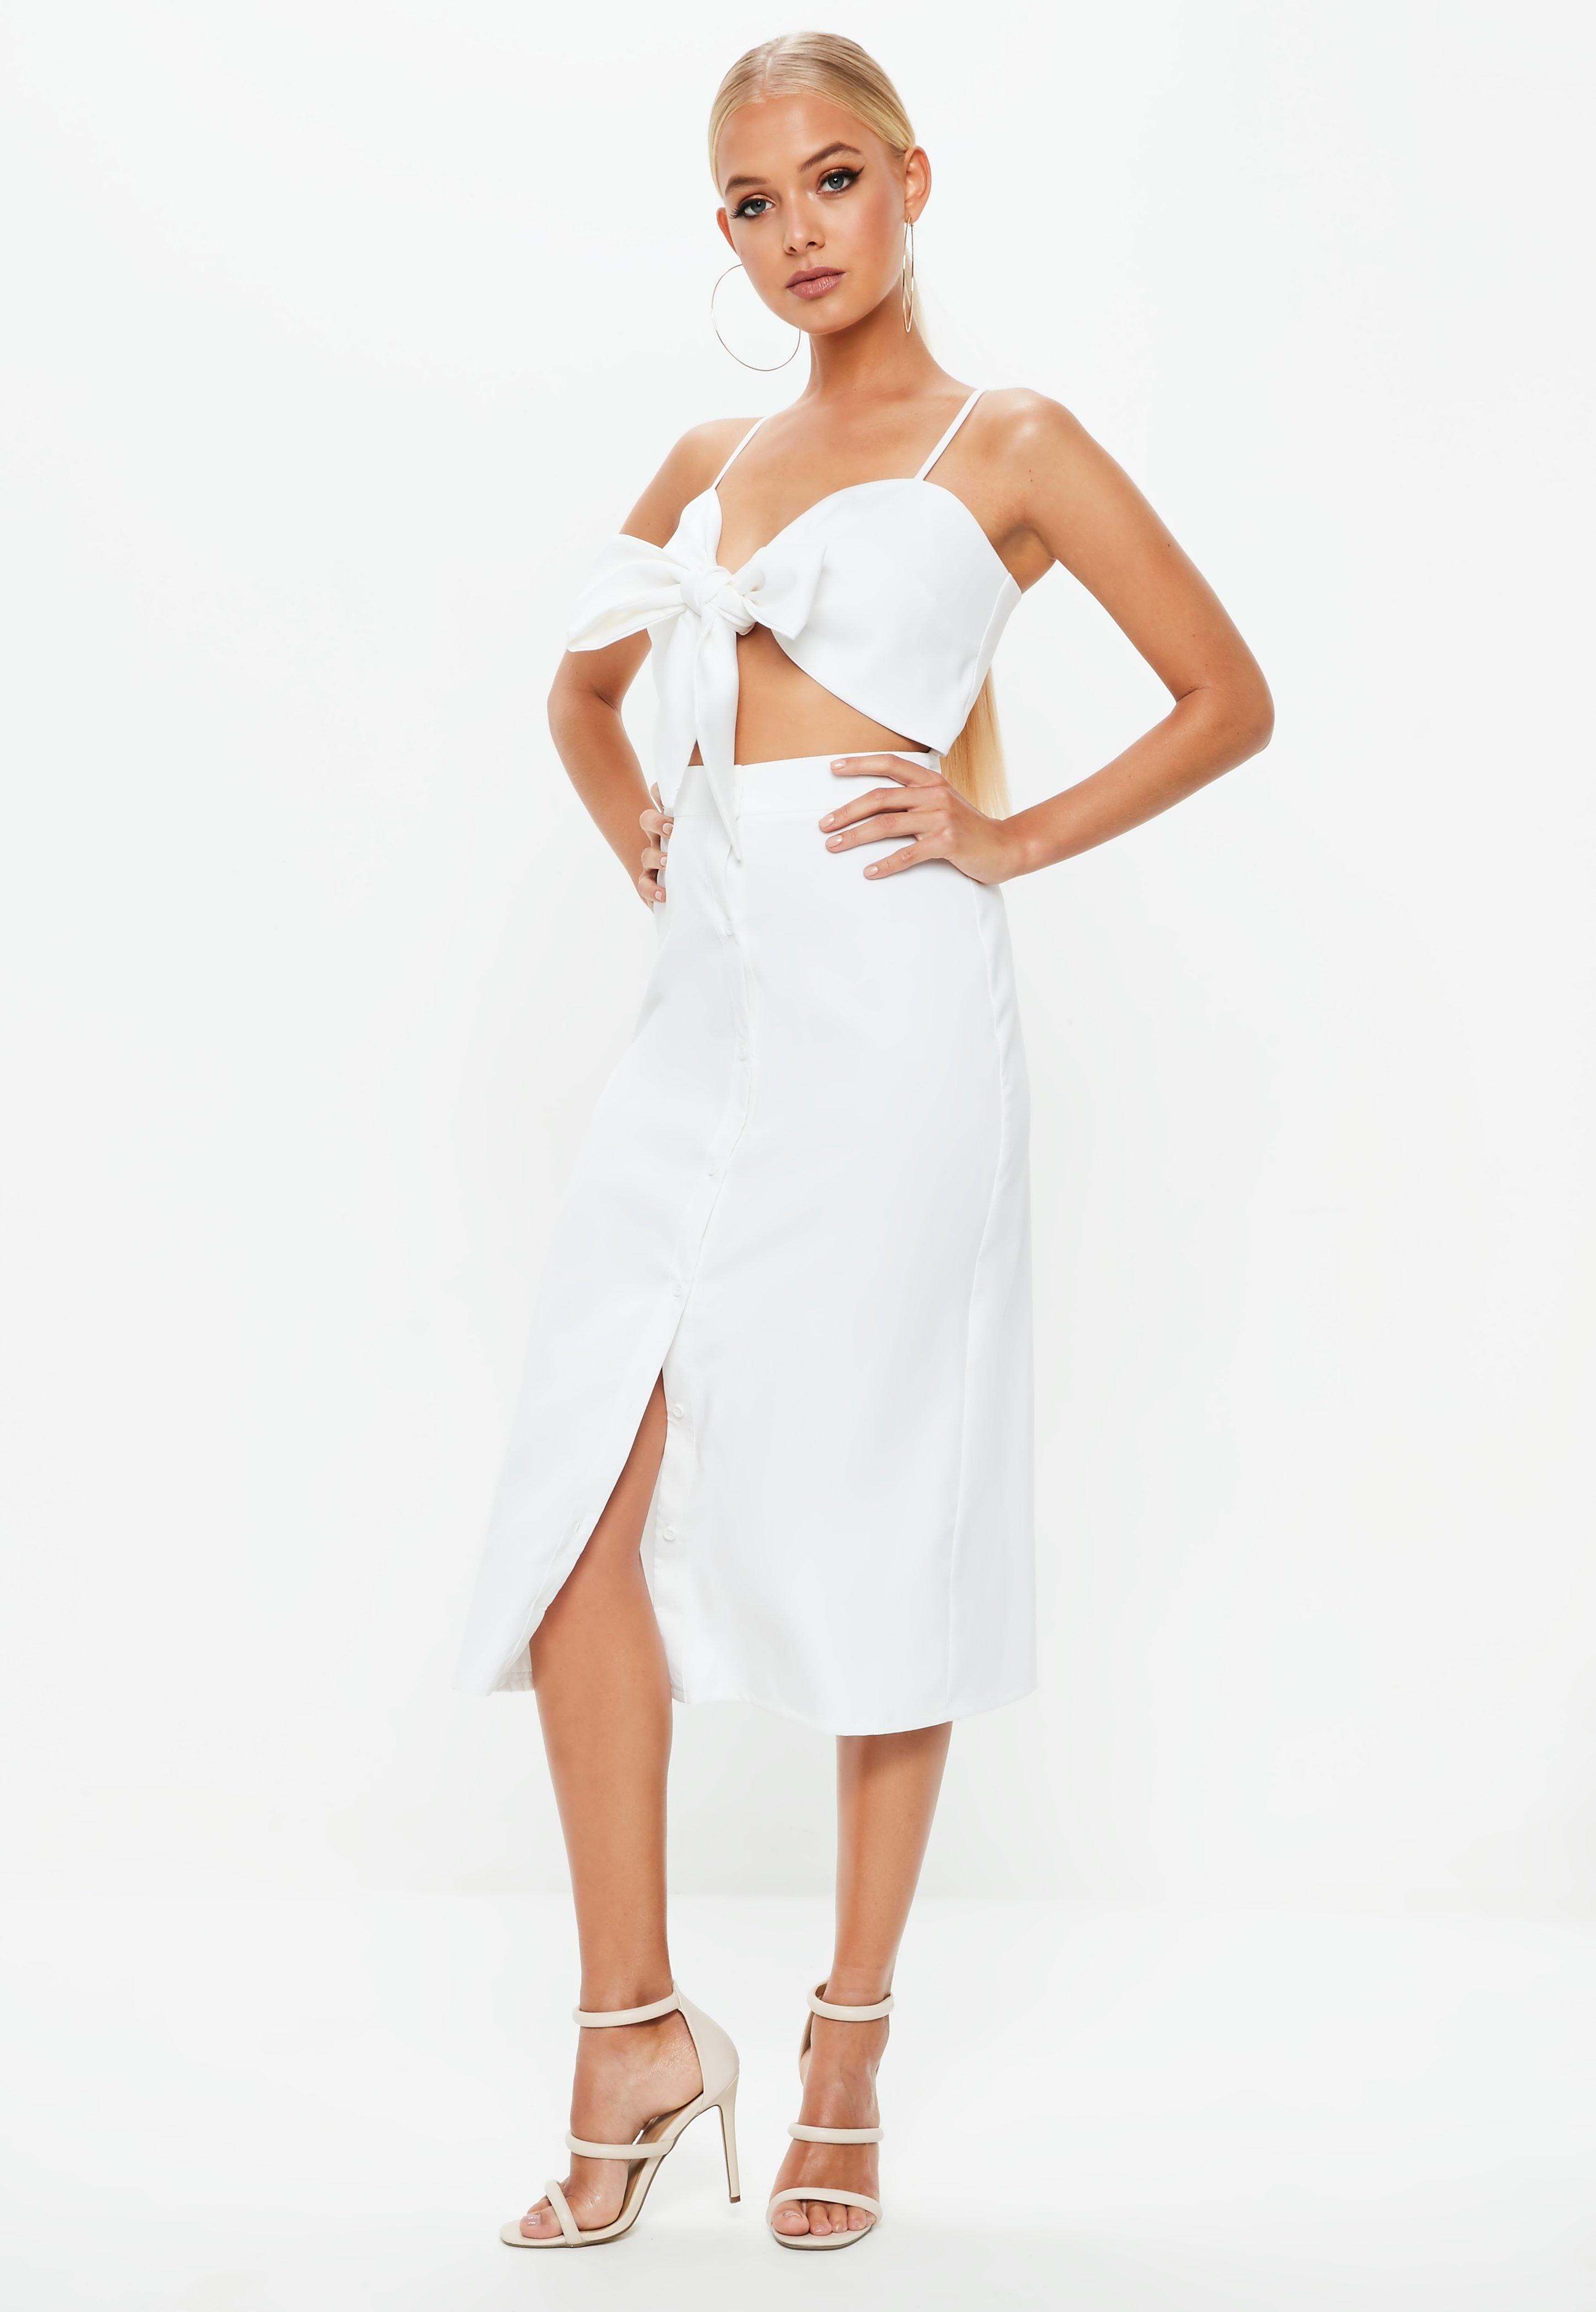 bd7dca40f39 Missguided - White Tie Front Button Down Strappy Midi Dress - Lyst. View  fullscreen